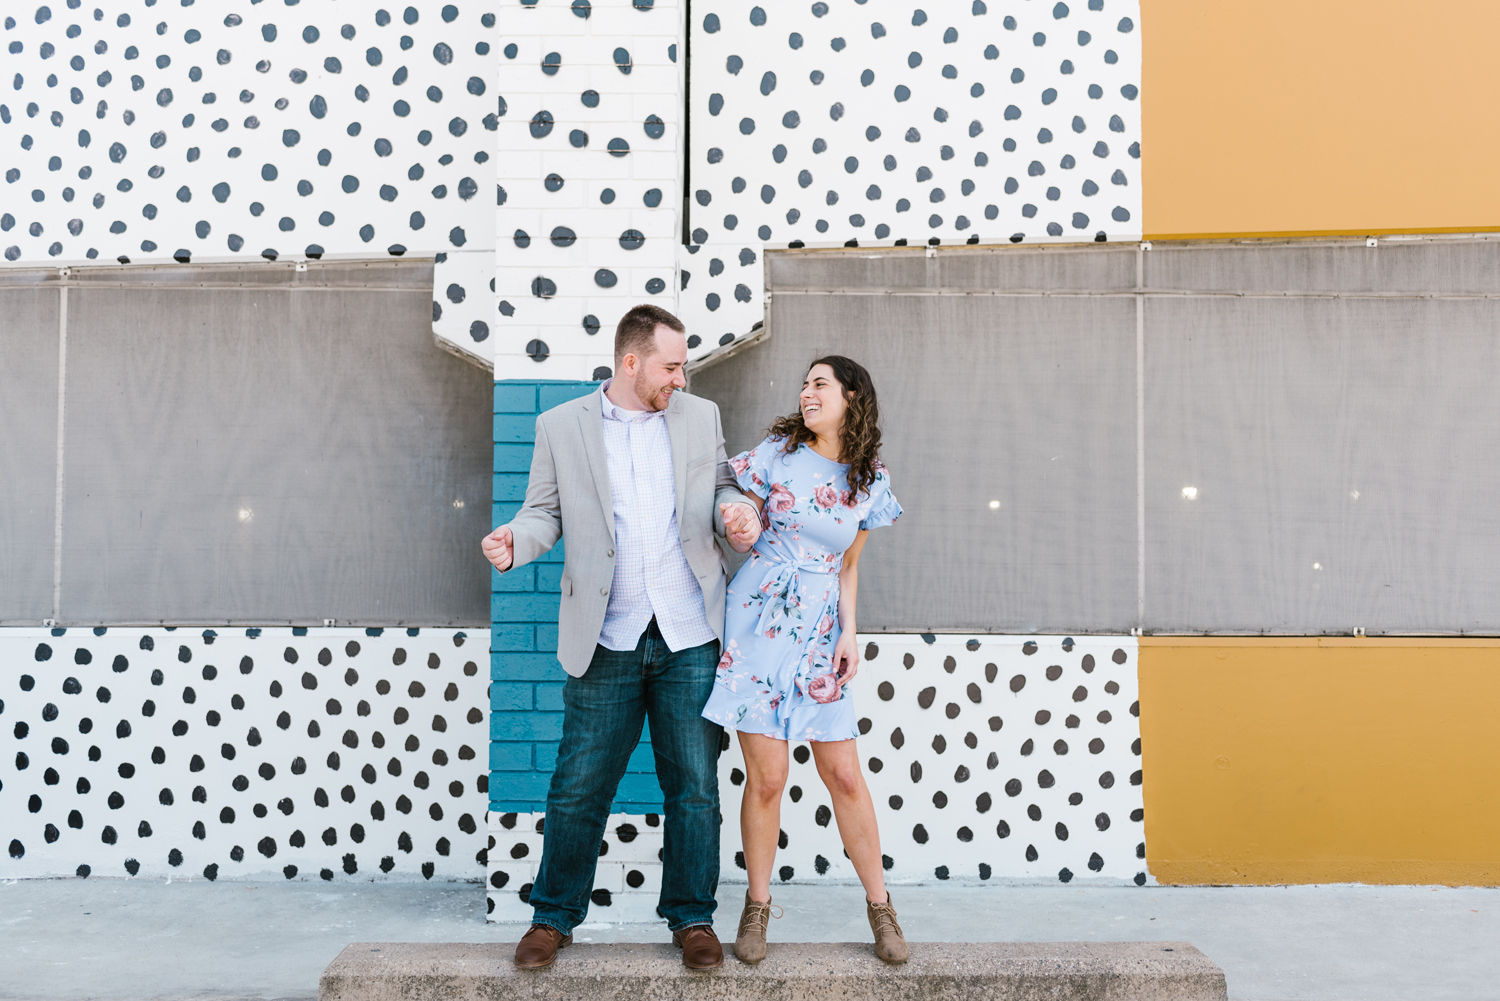 downtown-grand-rapids-michigan-engagement-photographer-spring-sydney-marie (81).jpg